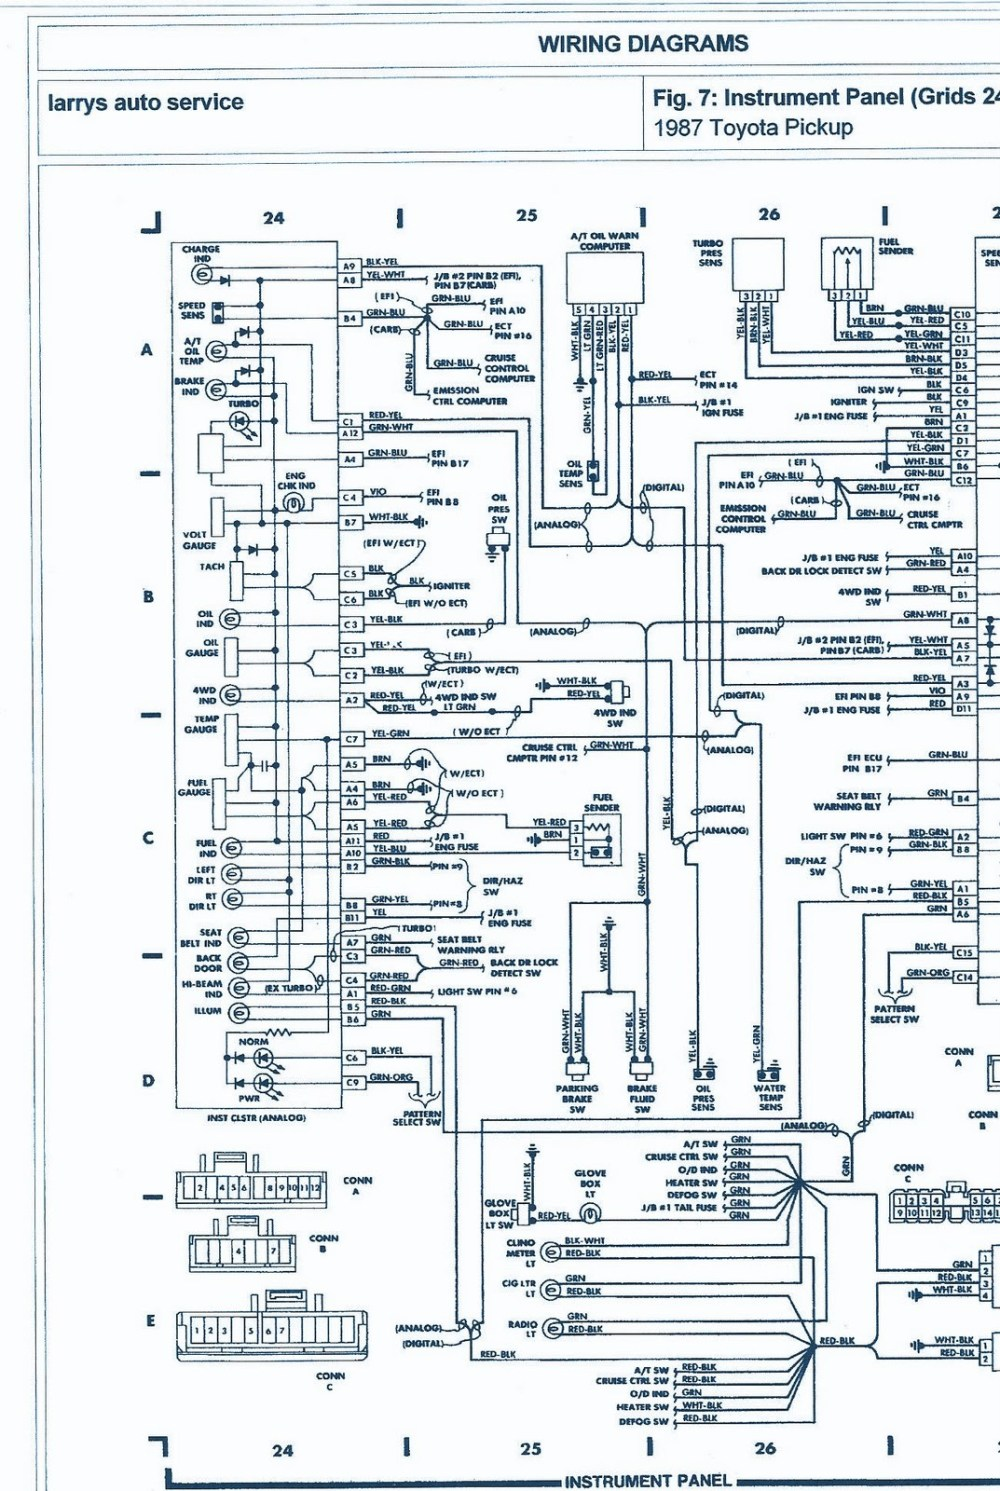 medium resolution of 87 cougar fuse diagram wiring diagrams schematics 1995 isuzu pickup truck 1987 isuzu pup fuse box